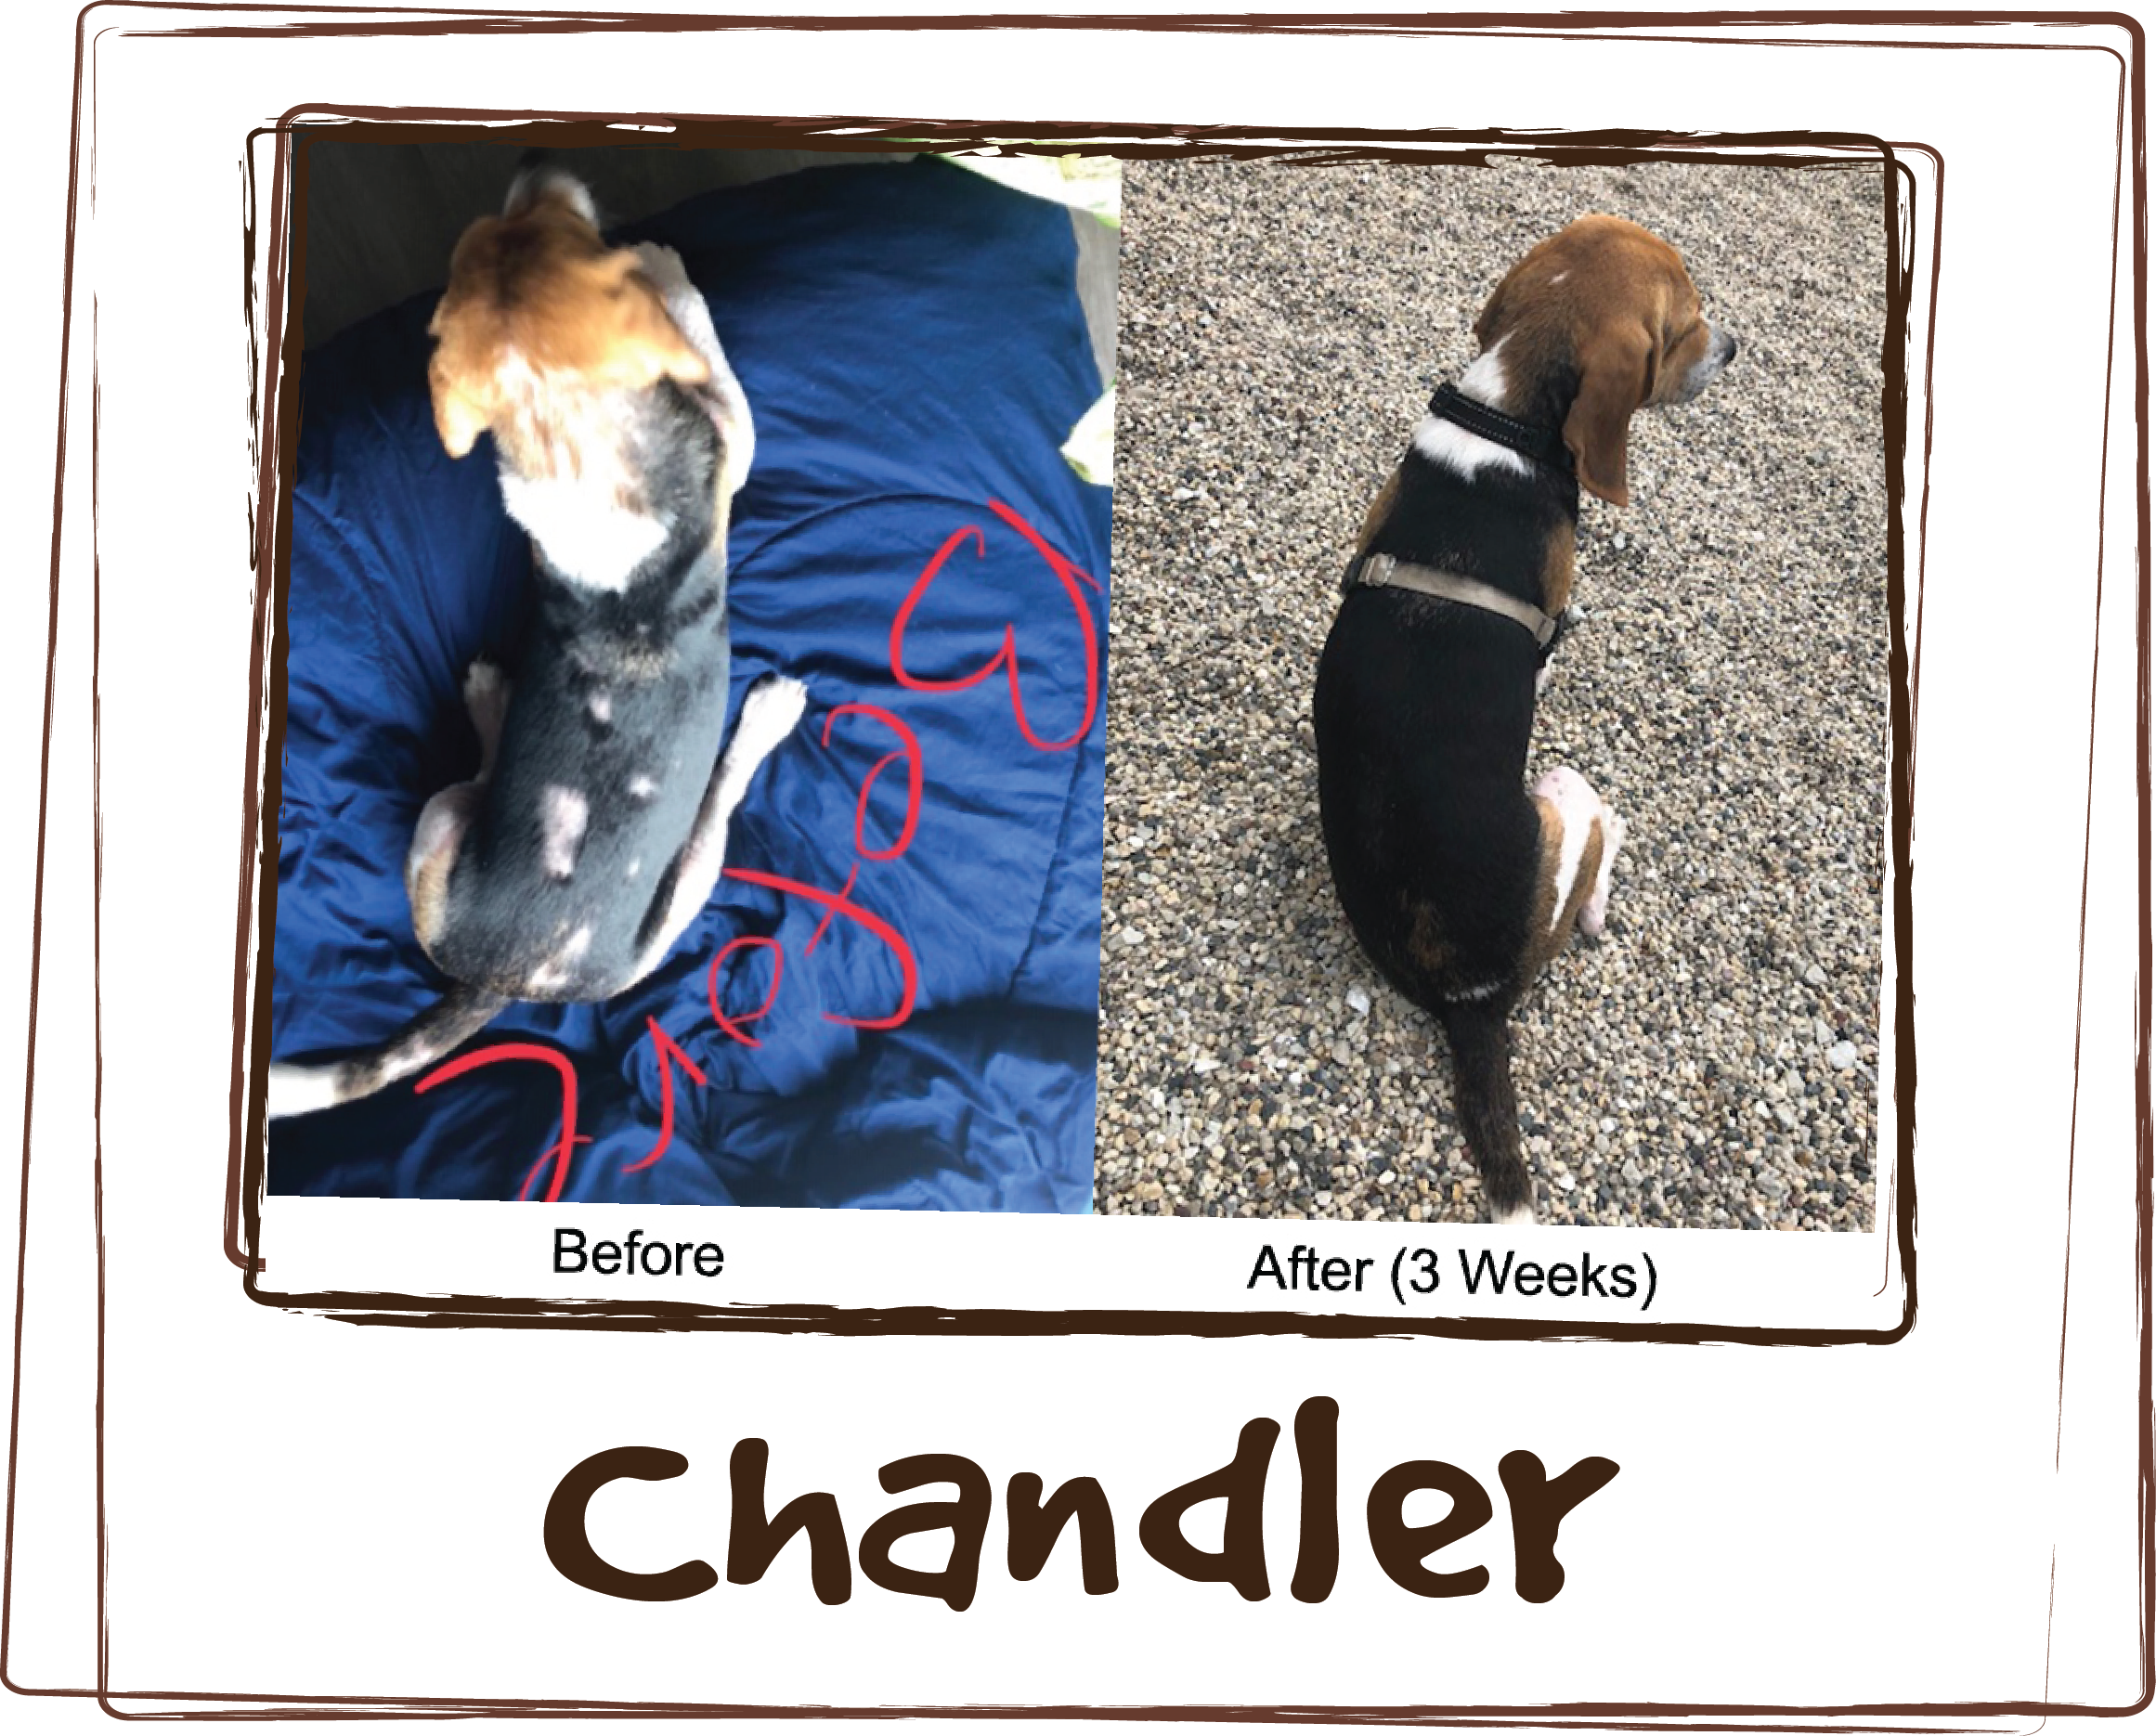 """""""When I first got Chandler from Alive Rescue, he had major skin issues. Bald spots all over his back, his chest was completely bare, like someone shaved him, and the fur was gone on a portion of his leg. The vet I went to gave me 2 different prescription meds to give to him but after hearing how Rx meds hadn't worked for him in the past, I decided to try something different. I met Amy randomly while eating lunch on a patio in the west loop. She told me about Licks and recommended this product. Within a week of me giving it to him I could see a noticeable improvement in his behavior - he didn't rub or scratch as much. And within 3-4 weeks, his fur grew back completely on his back and he now has fur on his neck and his legs. His coat has grown in so beautifully, he looks like a completely different dog! The sad but also happy part of this story was he was put on the kill list at a local shelter because of his allergies/skin. Because Alive Rescue saved him and because I started him on the Licks supplement and a good nutrition routine, Chandler's skin issues are gone and he is now in a happy home, living his best beagle life! Thank you Licks!!"""""""